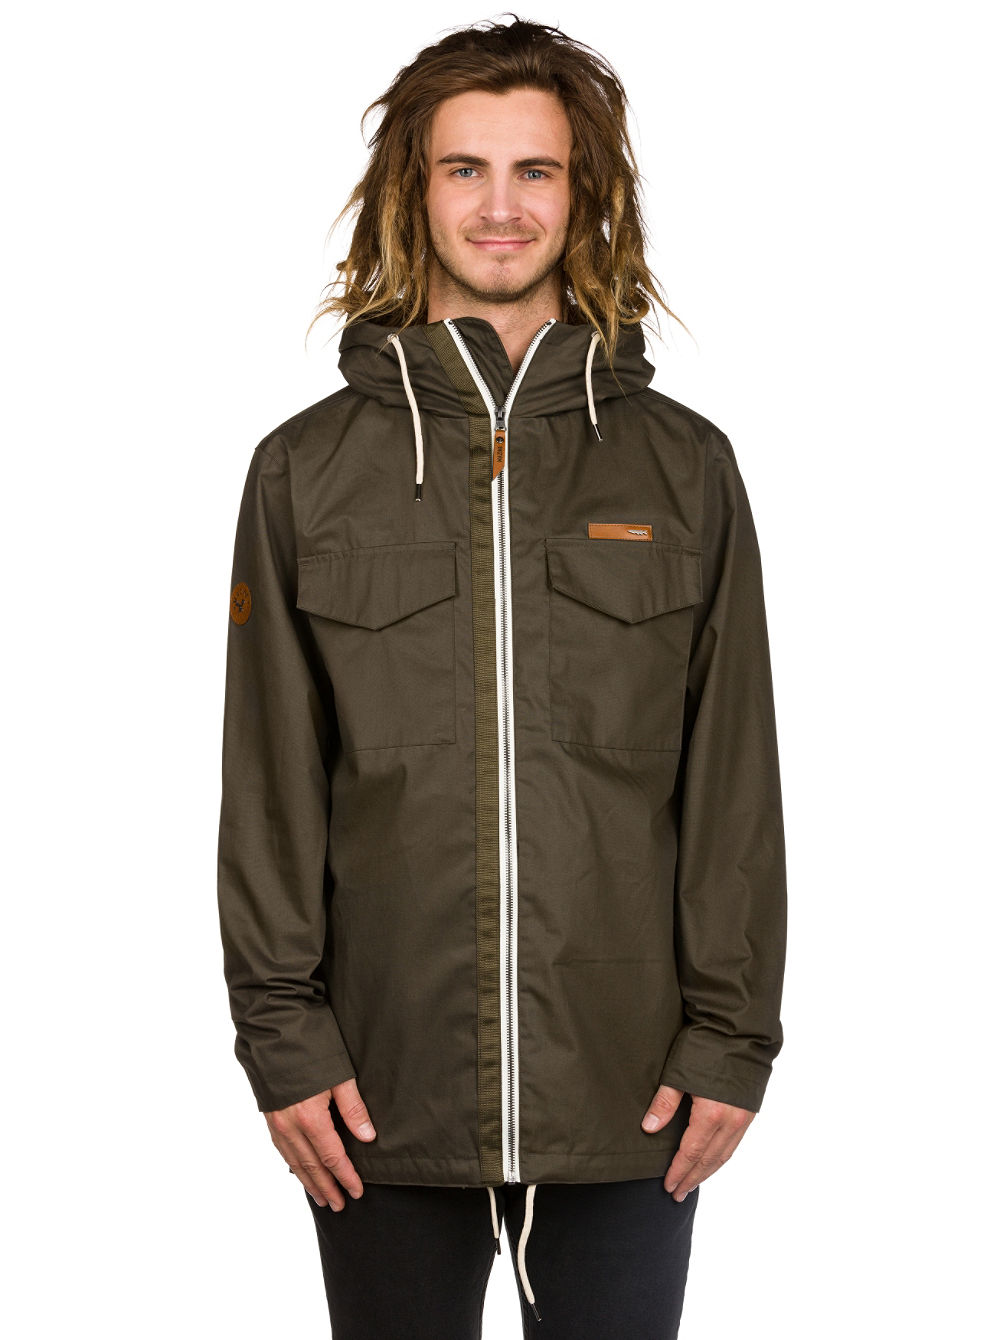 Stainfield Jacke